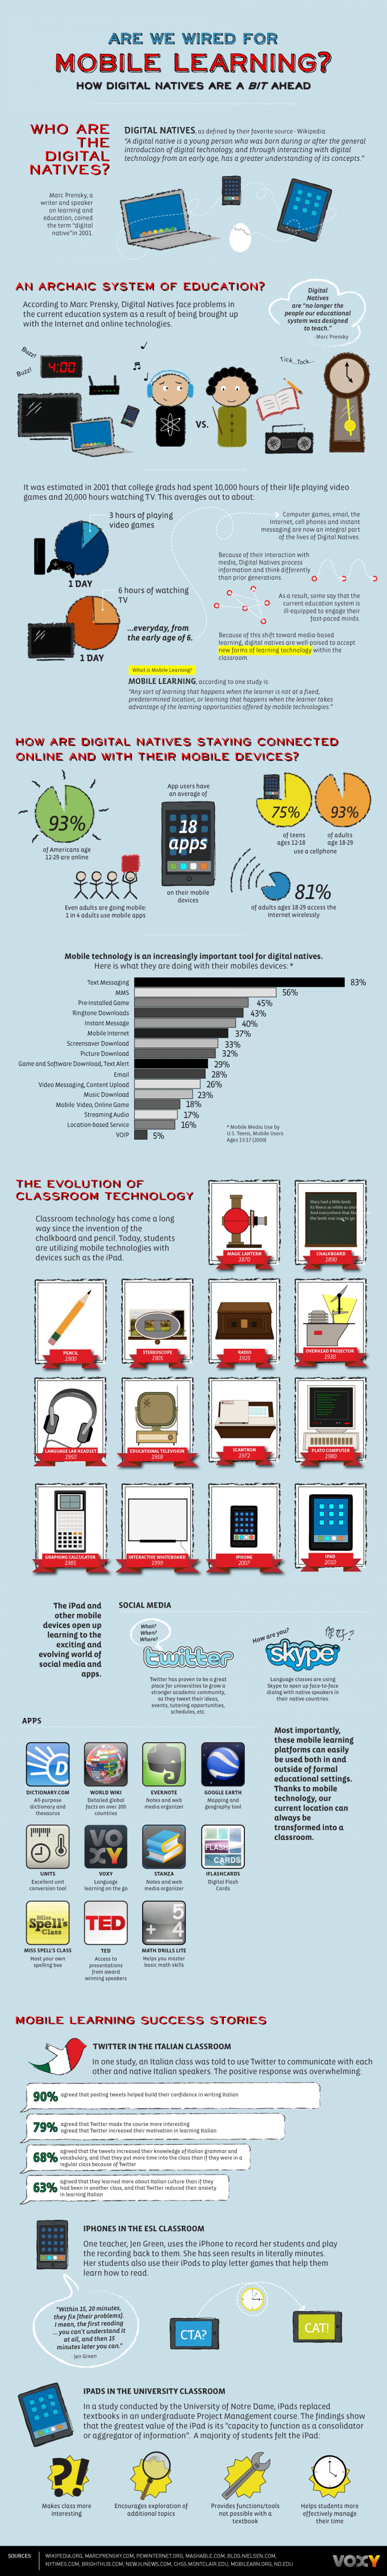 Are We Wired for Mobile Learning? Infographic